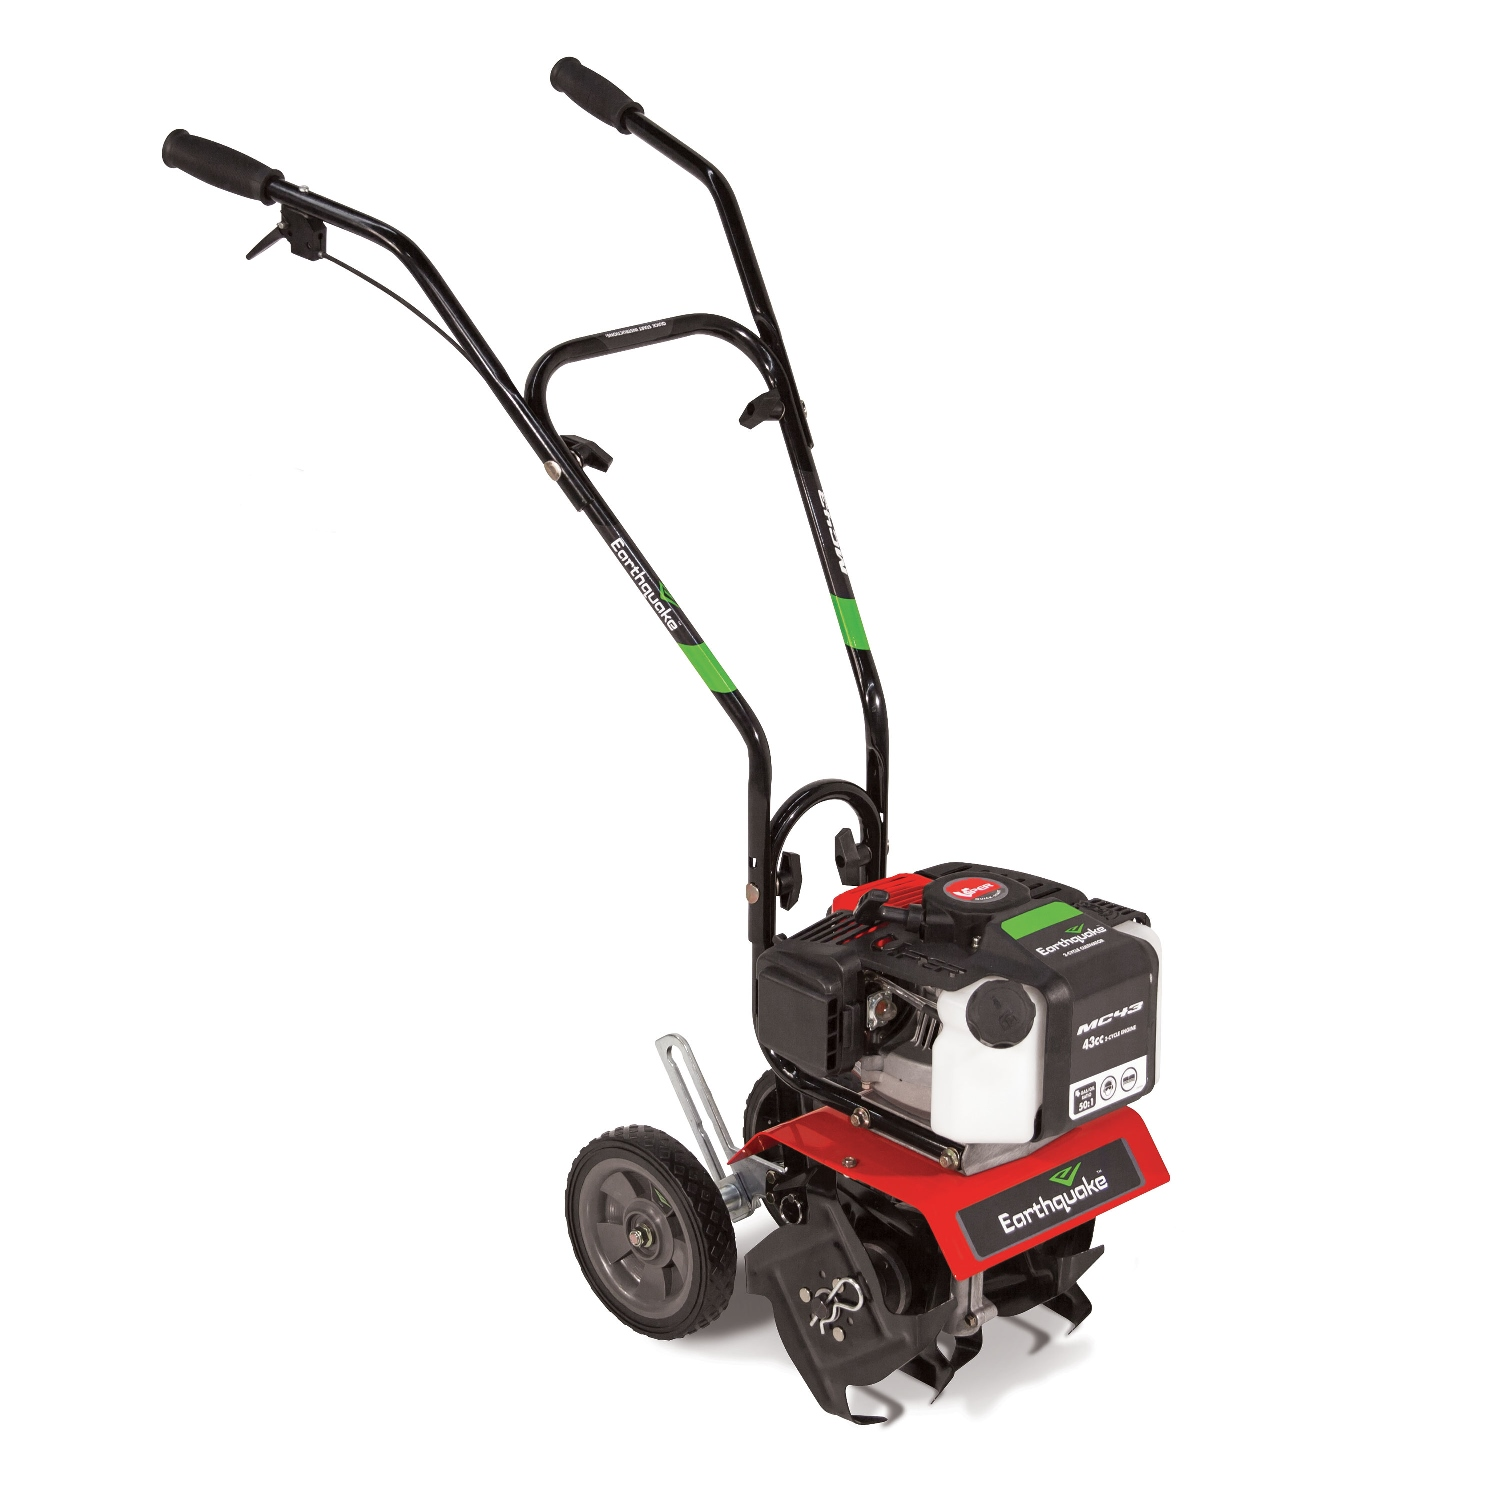 Earthquake MC43 Cultivator - a top-seller in the mini-cultivator category